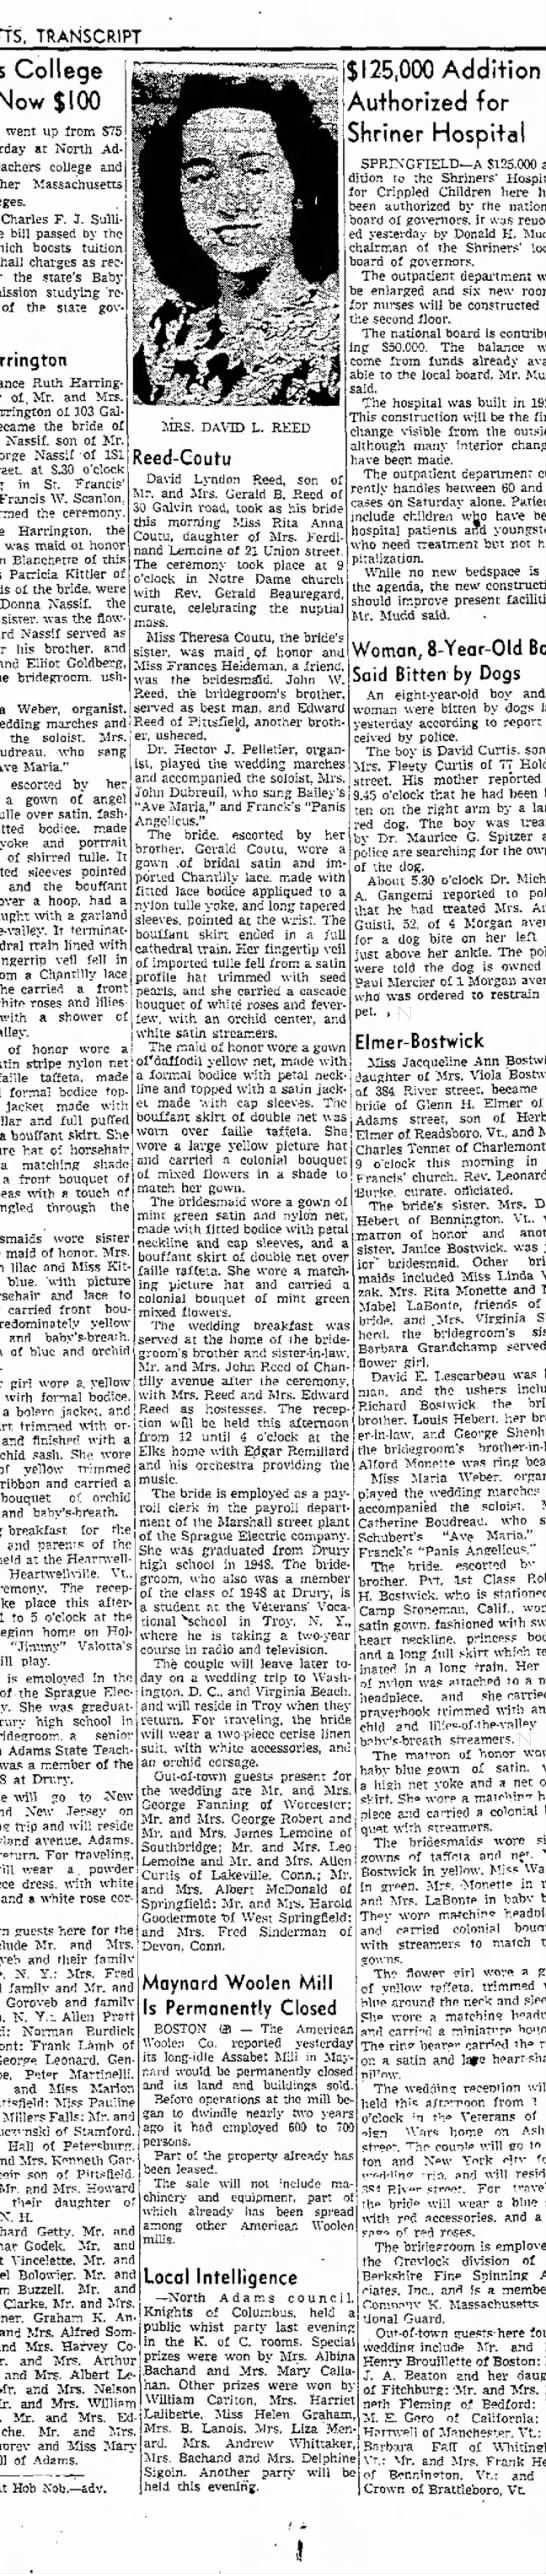 REED - COUTU WEDDING 6-28-52 UNCLE DAVID'S WEDDING - Newspapers com